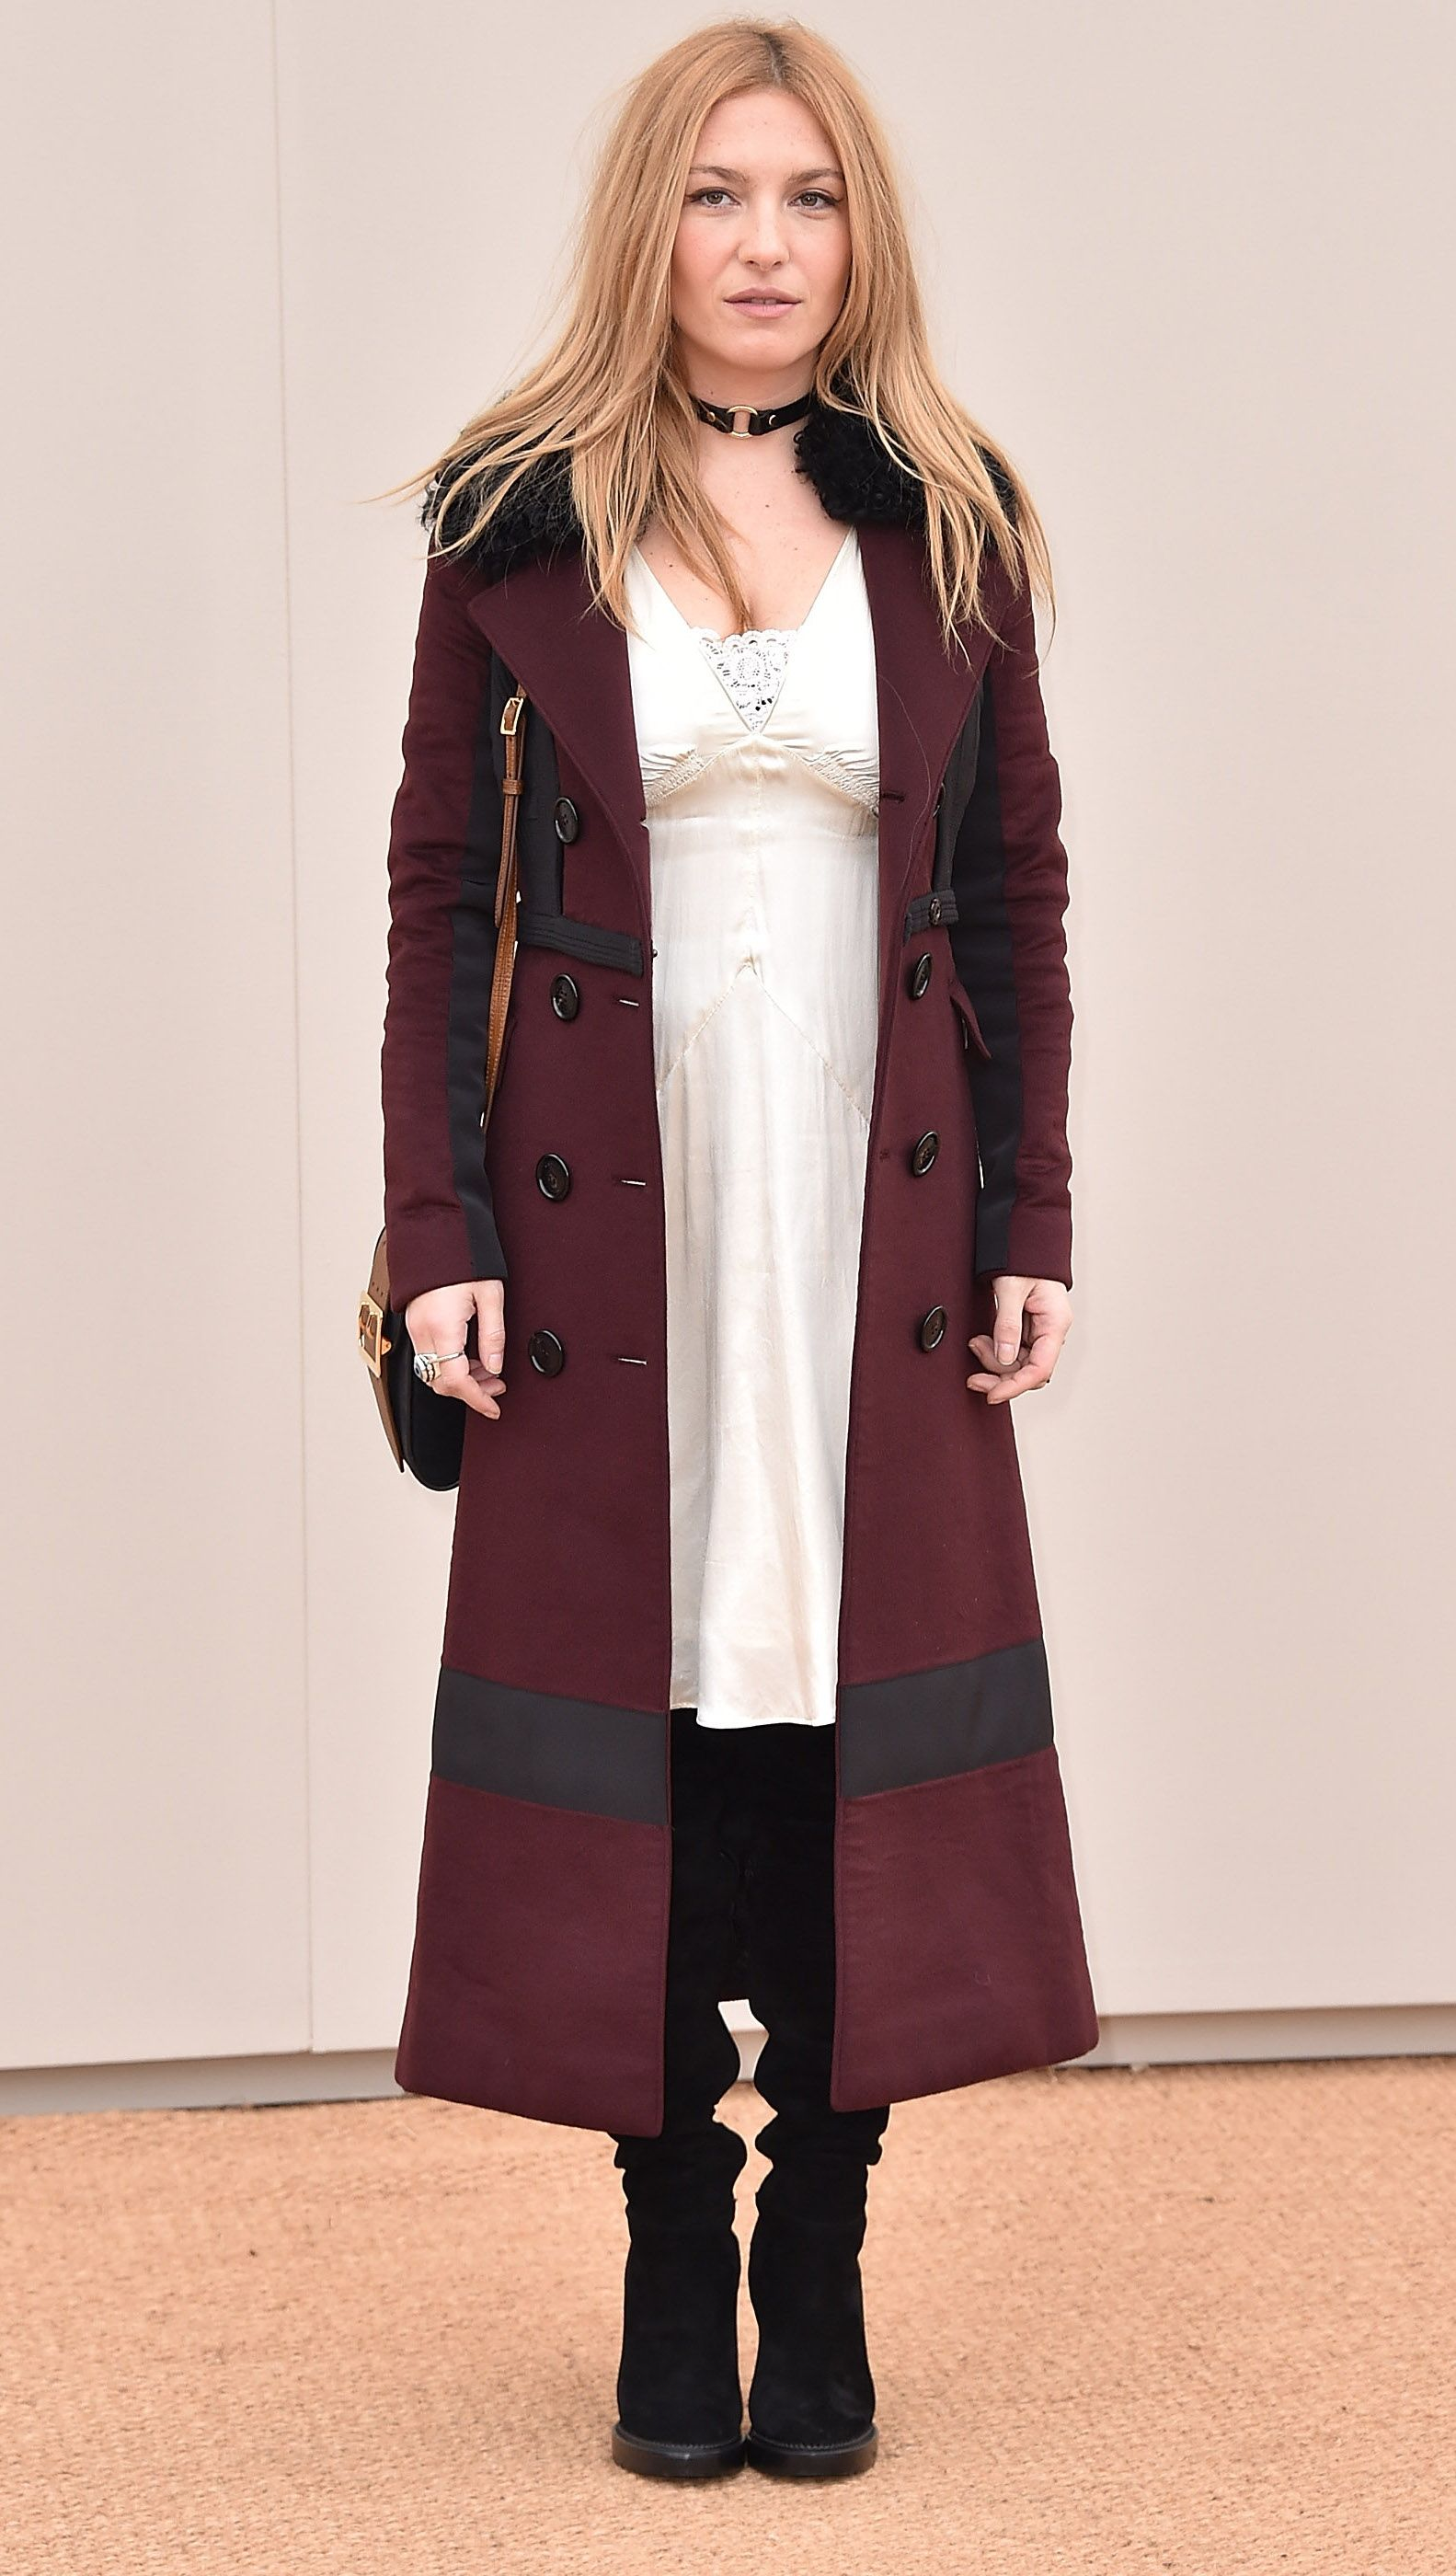 d05c3bec928 Josephine De La Baume wearing a Burberry trench coat to arrive at the  Burberry 2016 Menswear show